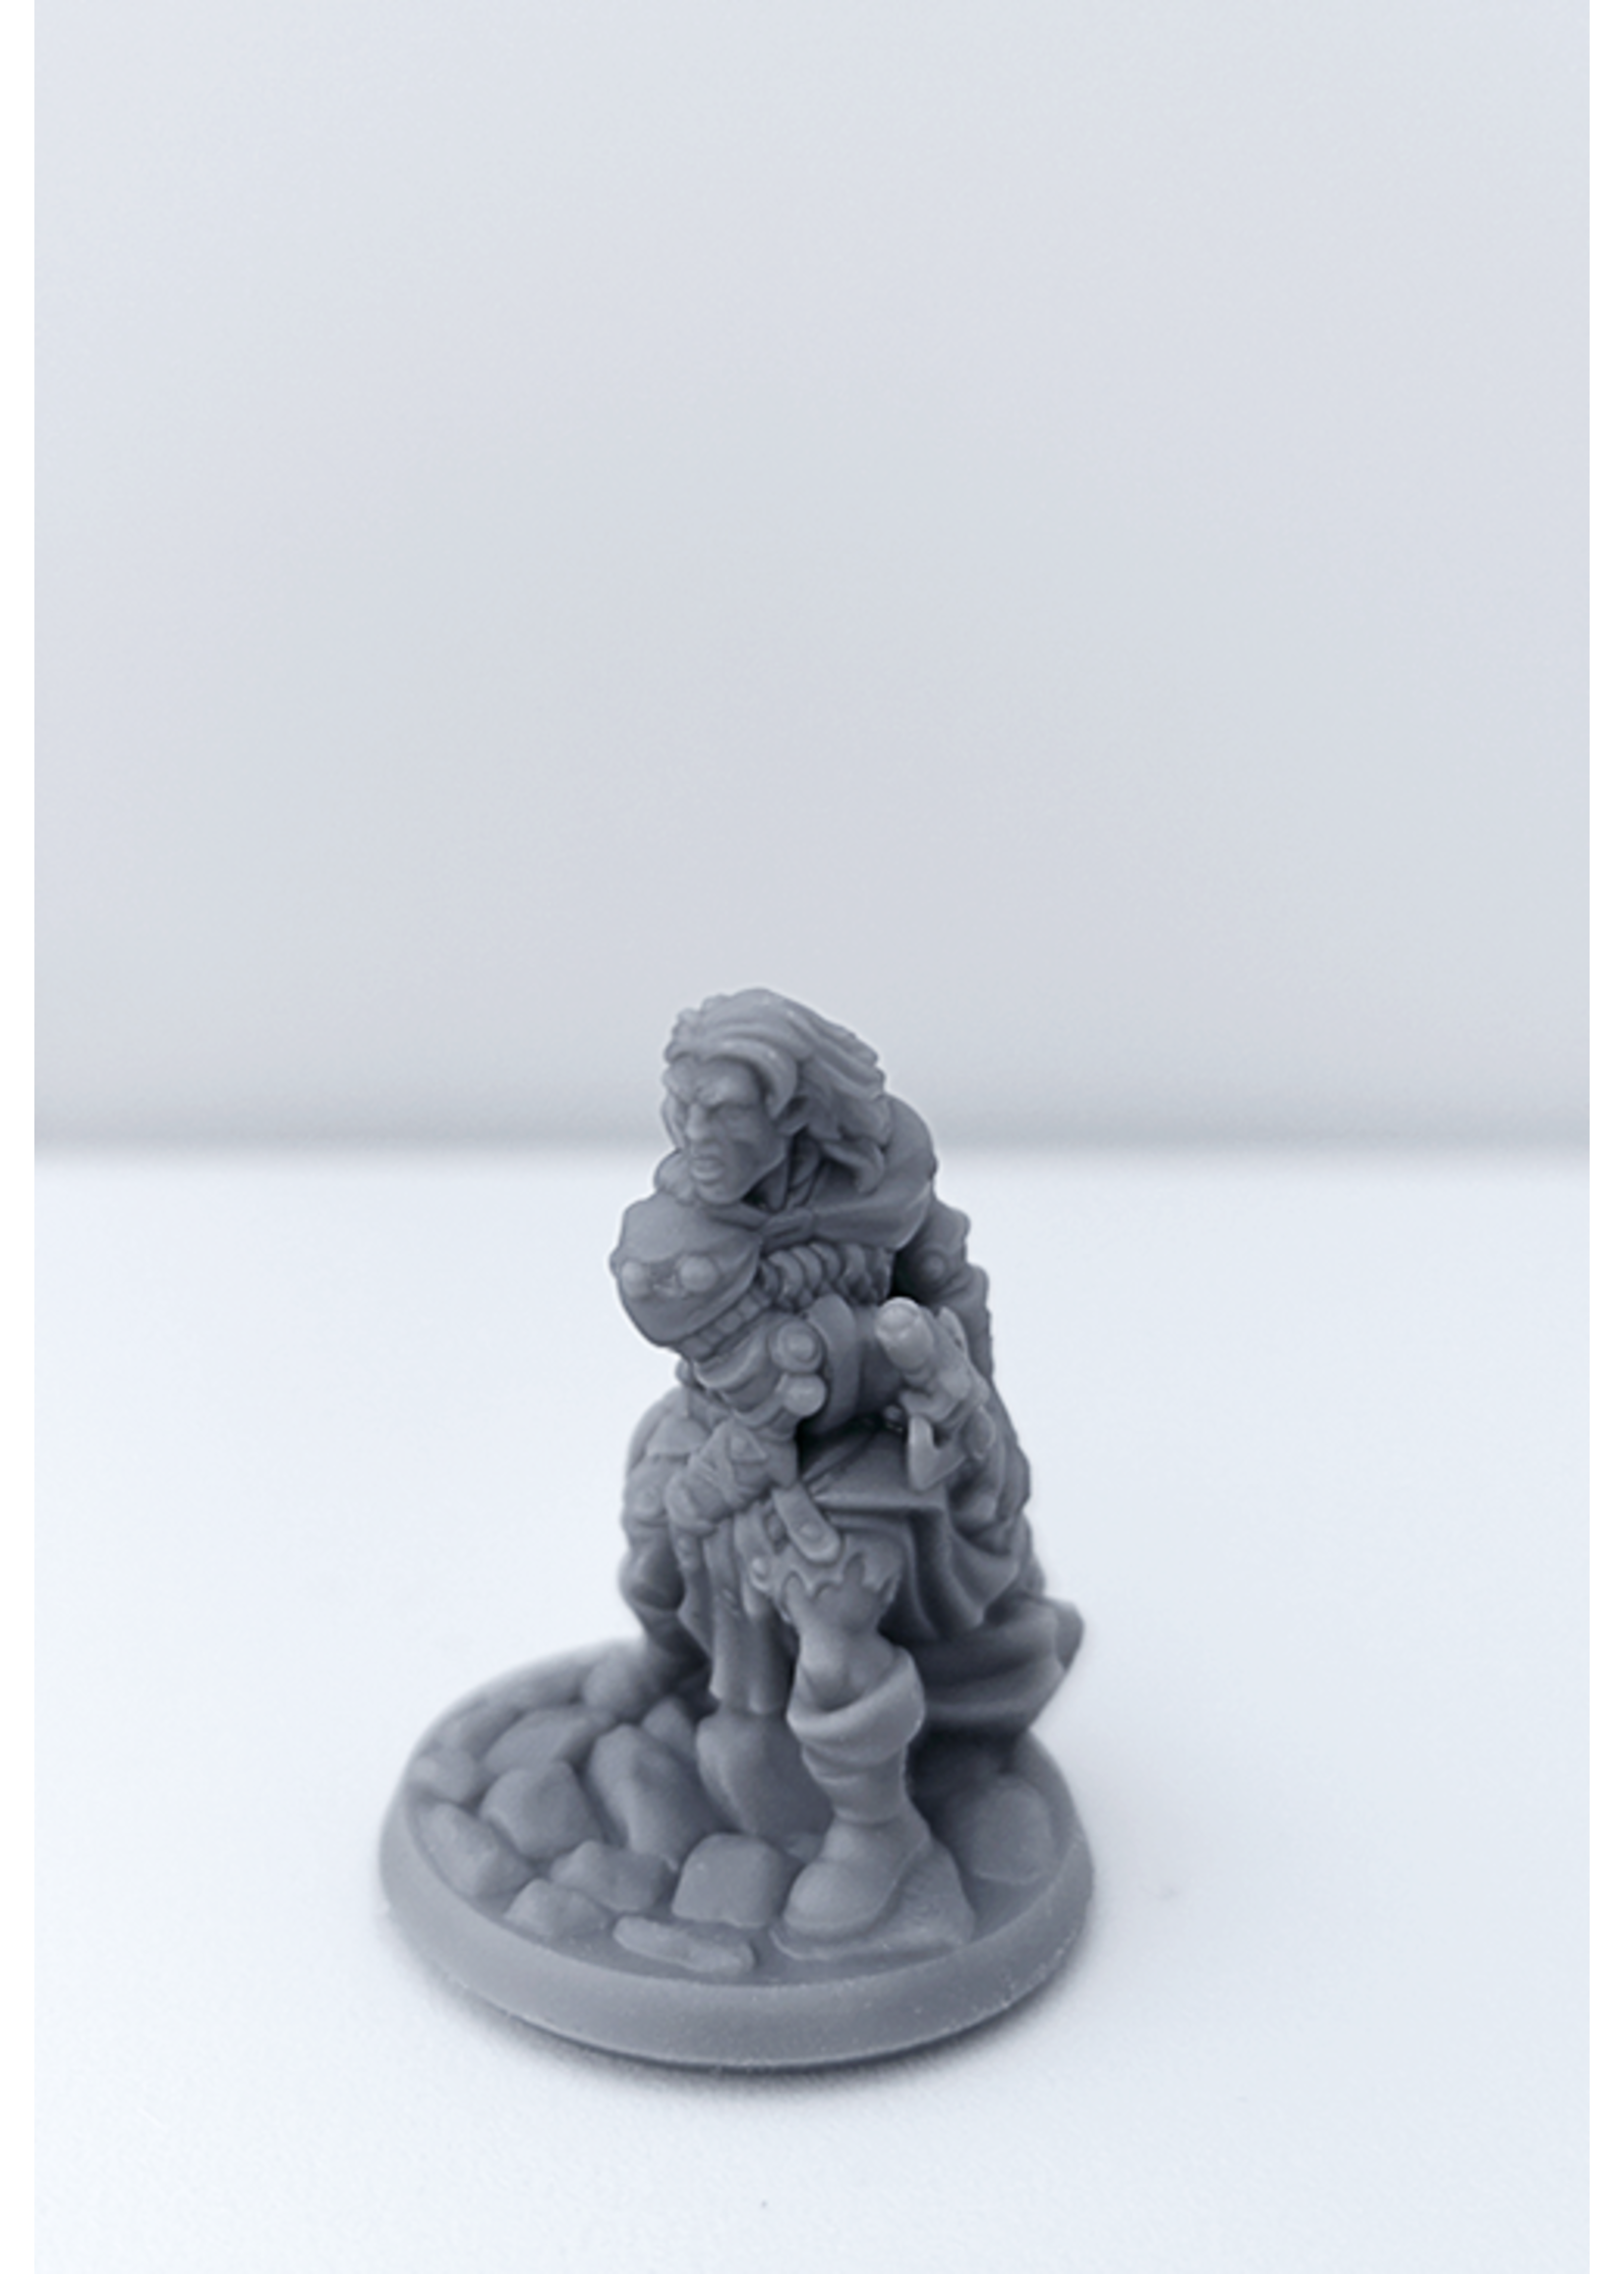 3D Printed Miniature - Fighter Male 01 - Dungeons & Dragons - Hero of the Realm KS